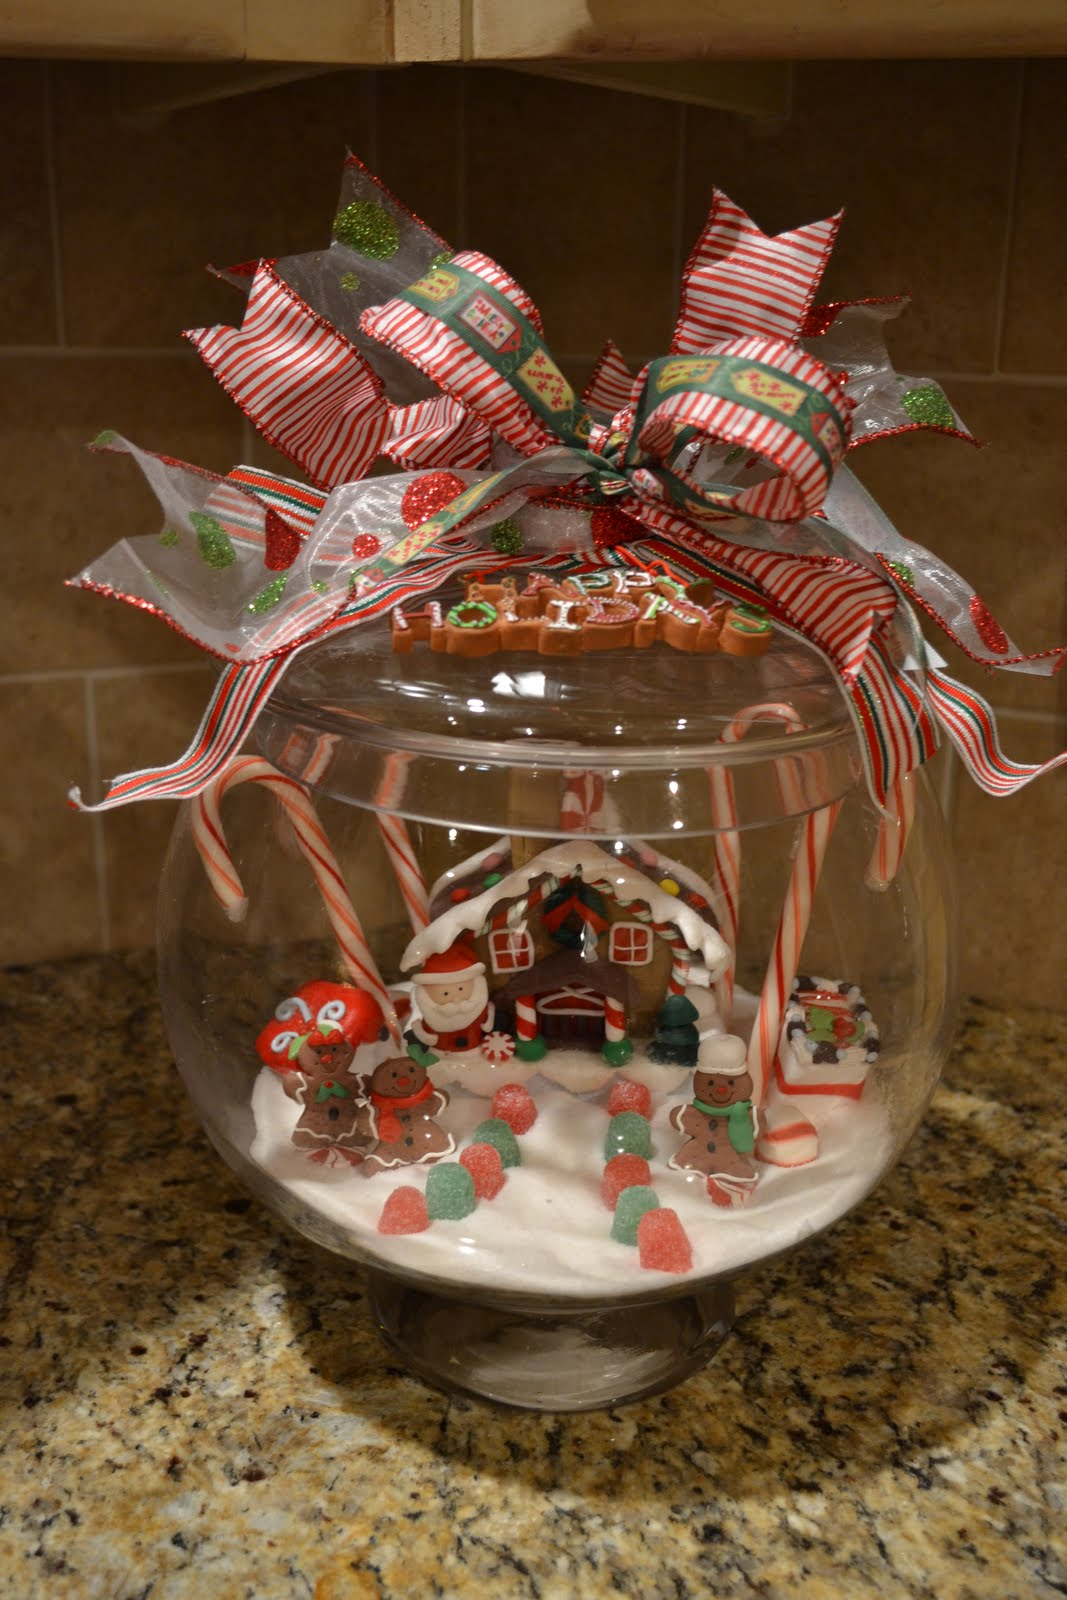 kristen u0026 39 s creations  gingerbread decorations  etsy store items and an upcoming giveaway